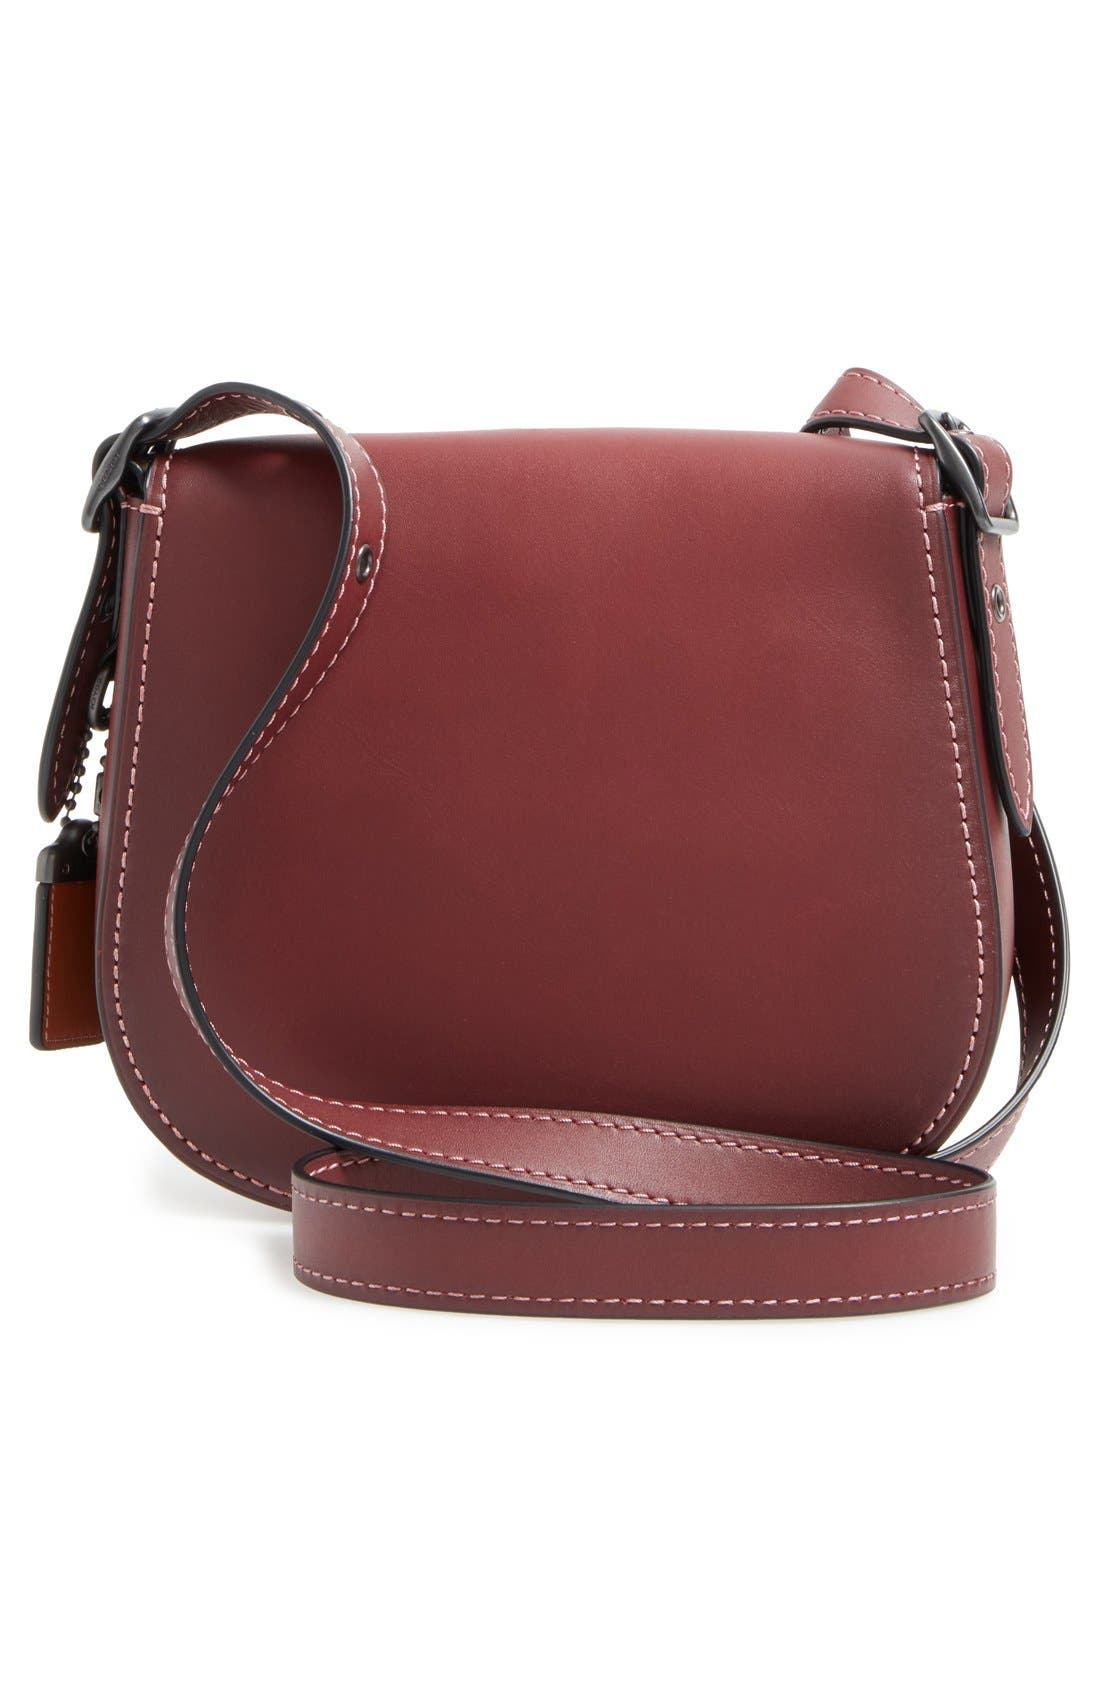 Alternate Image 3  - COACH 1941 '23' Leather Saddle Bag